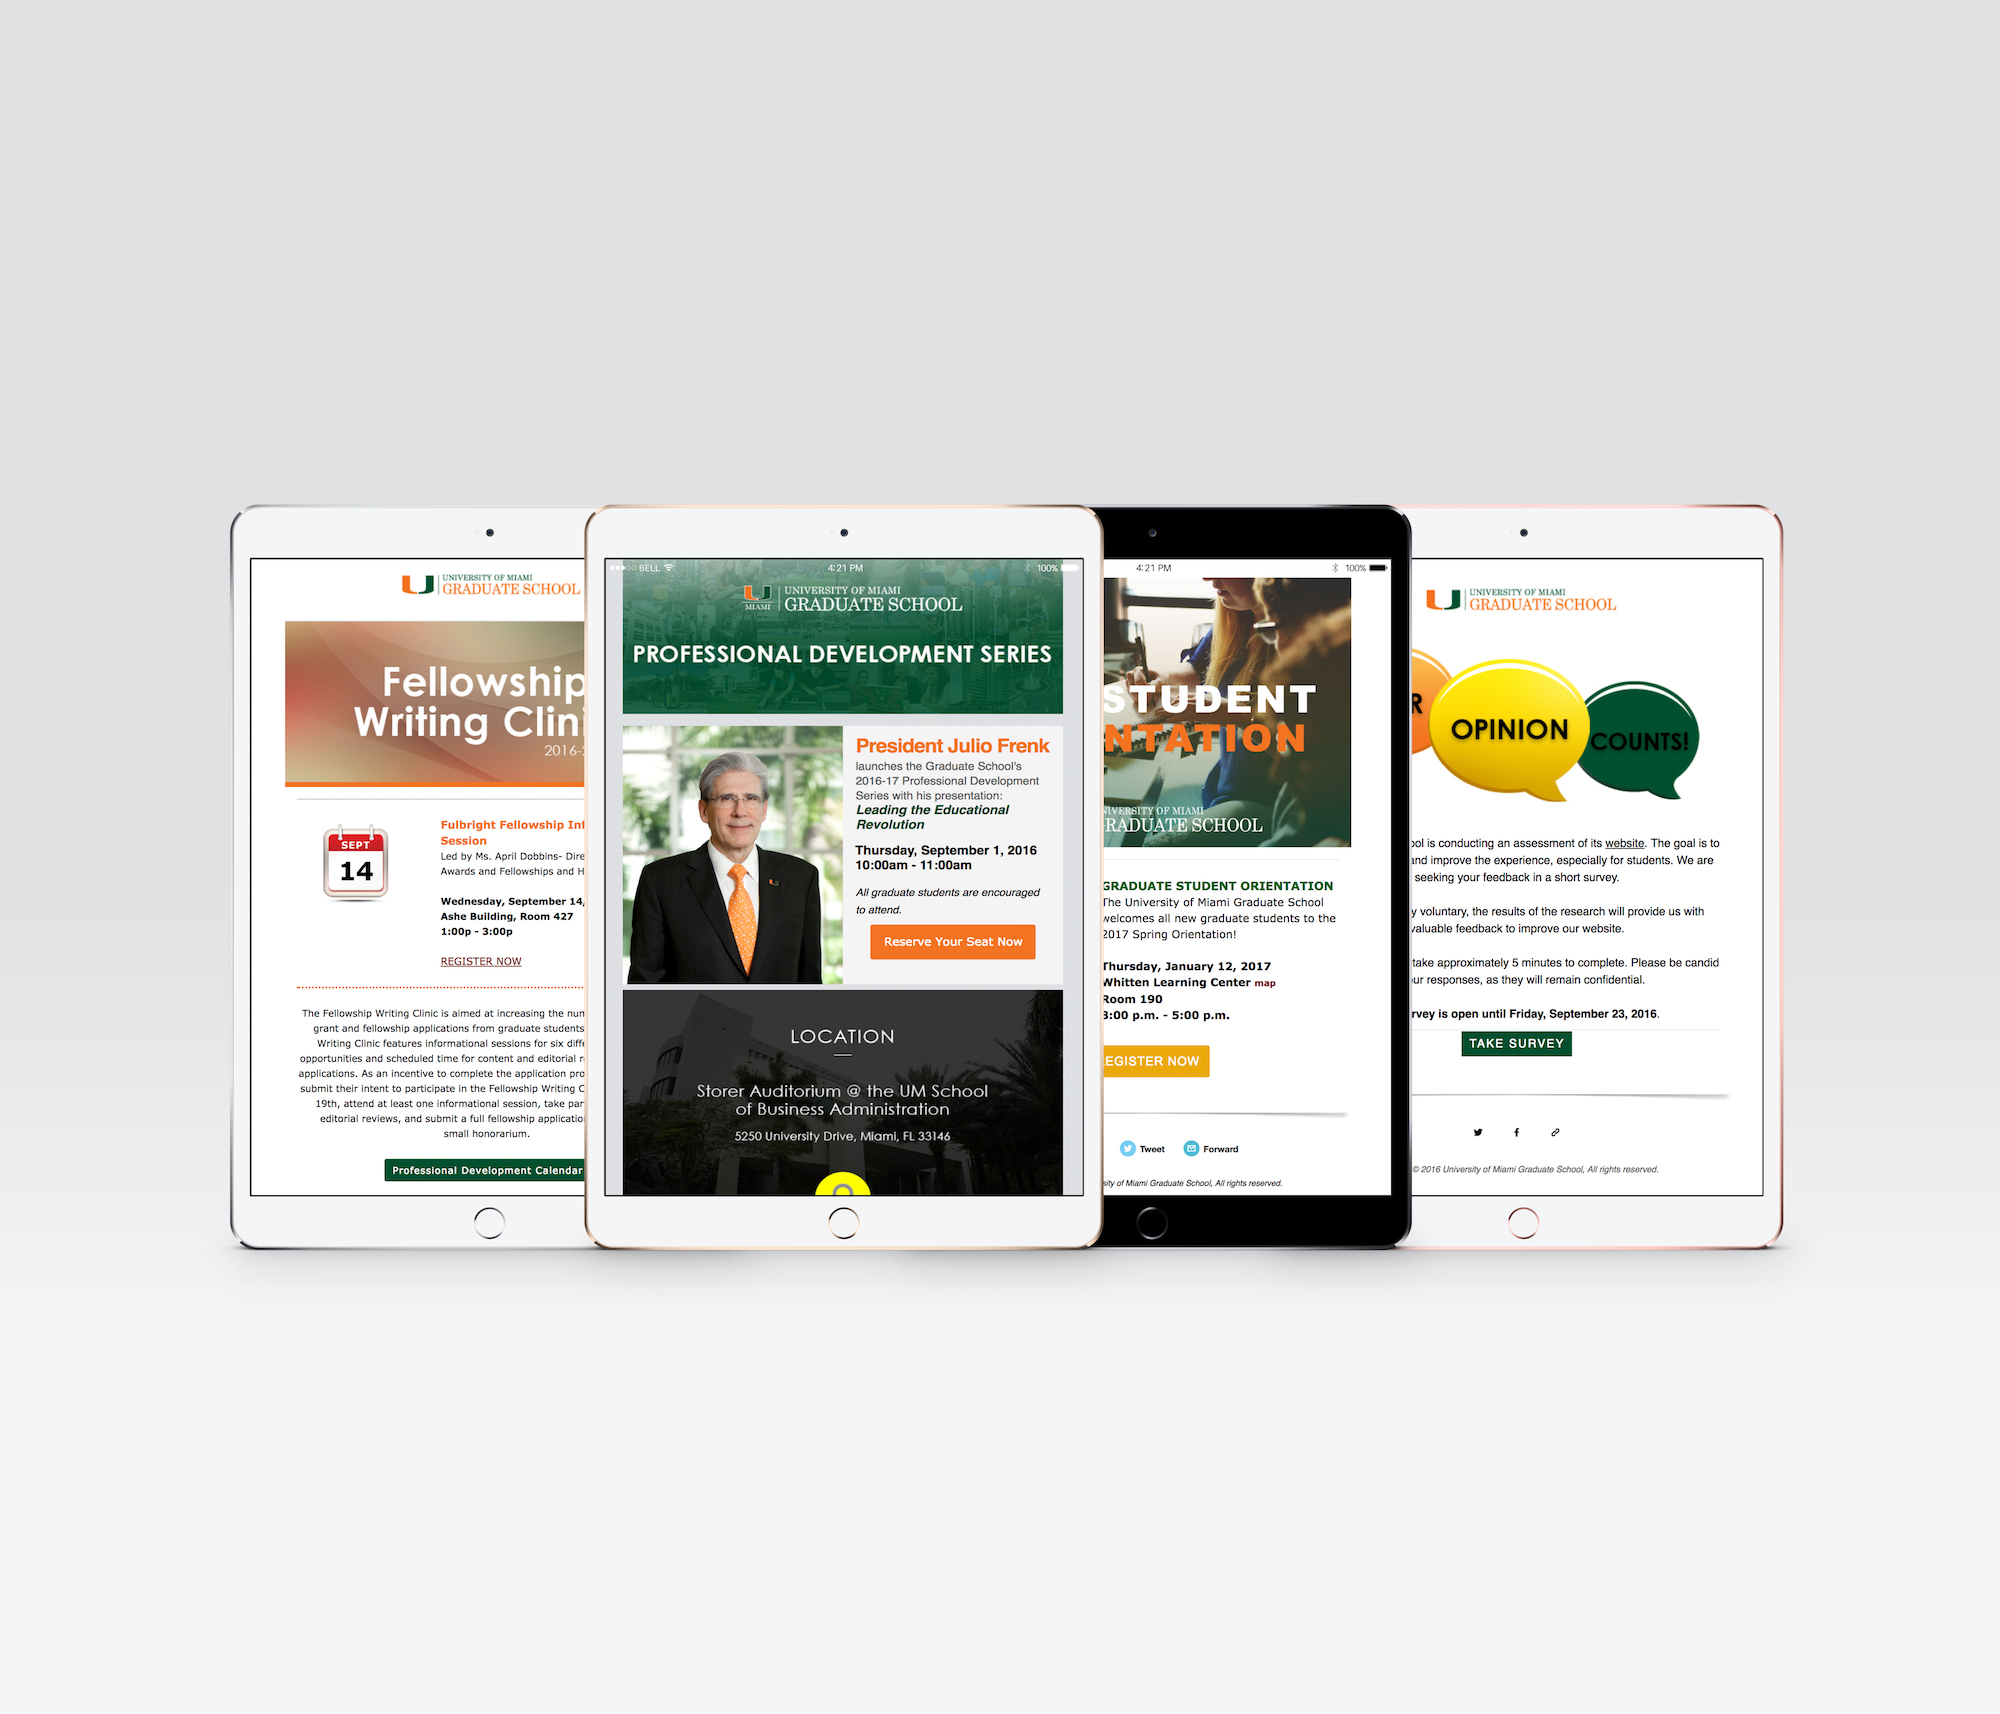 University of Miami Mailchimp Email Campaigns.jpg